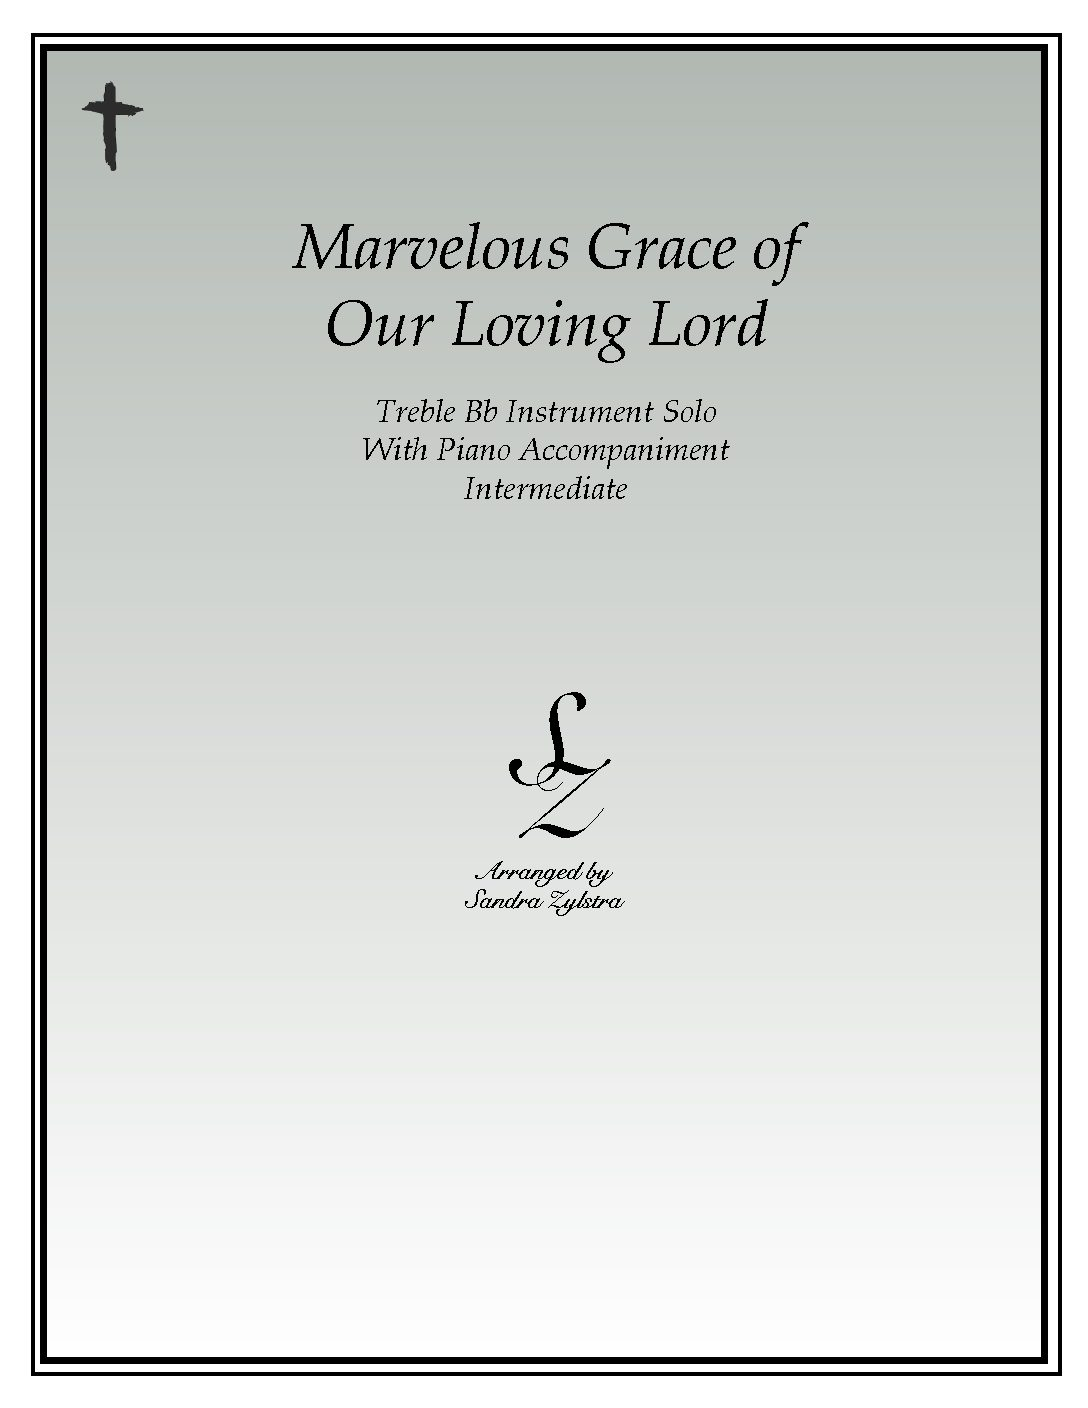 Marvelous Grace Of Our Loving Lord -Treble Bb Instrument Solo